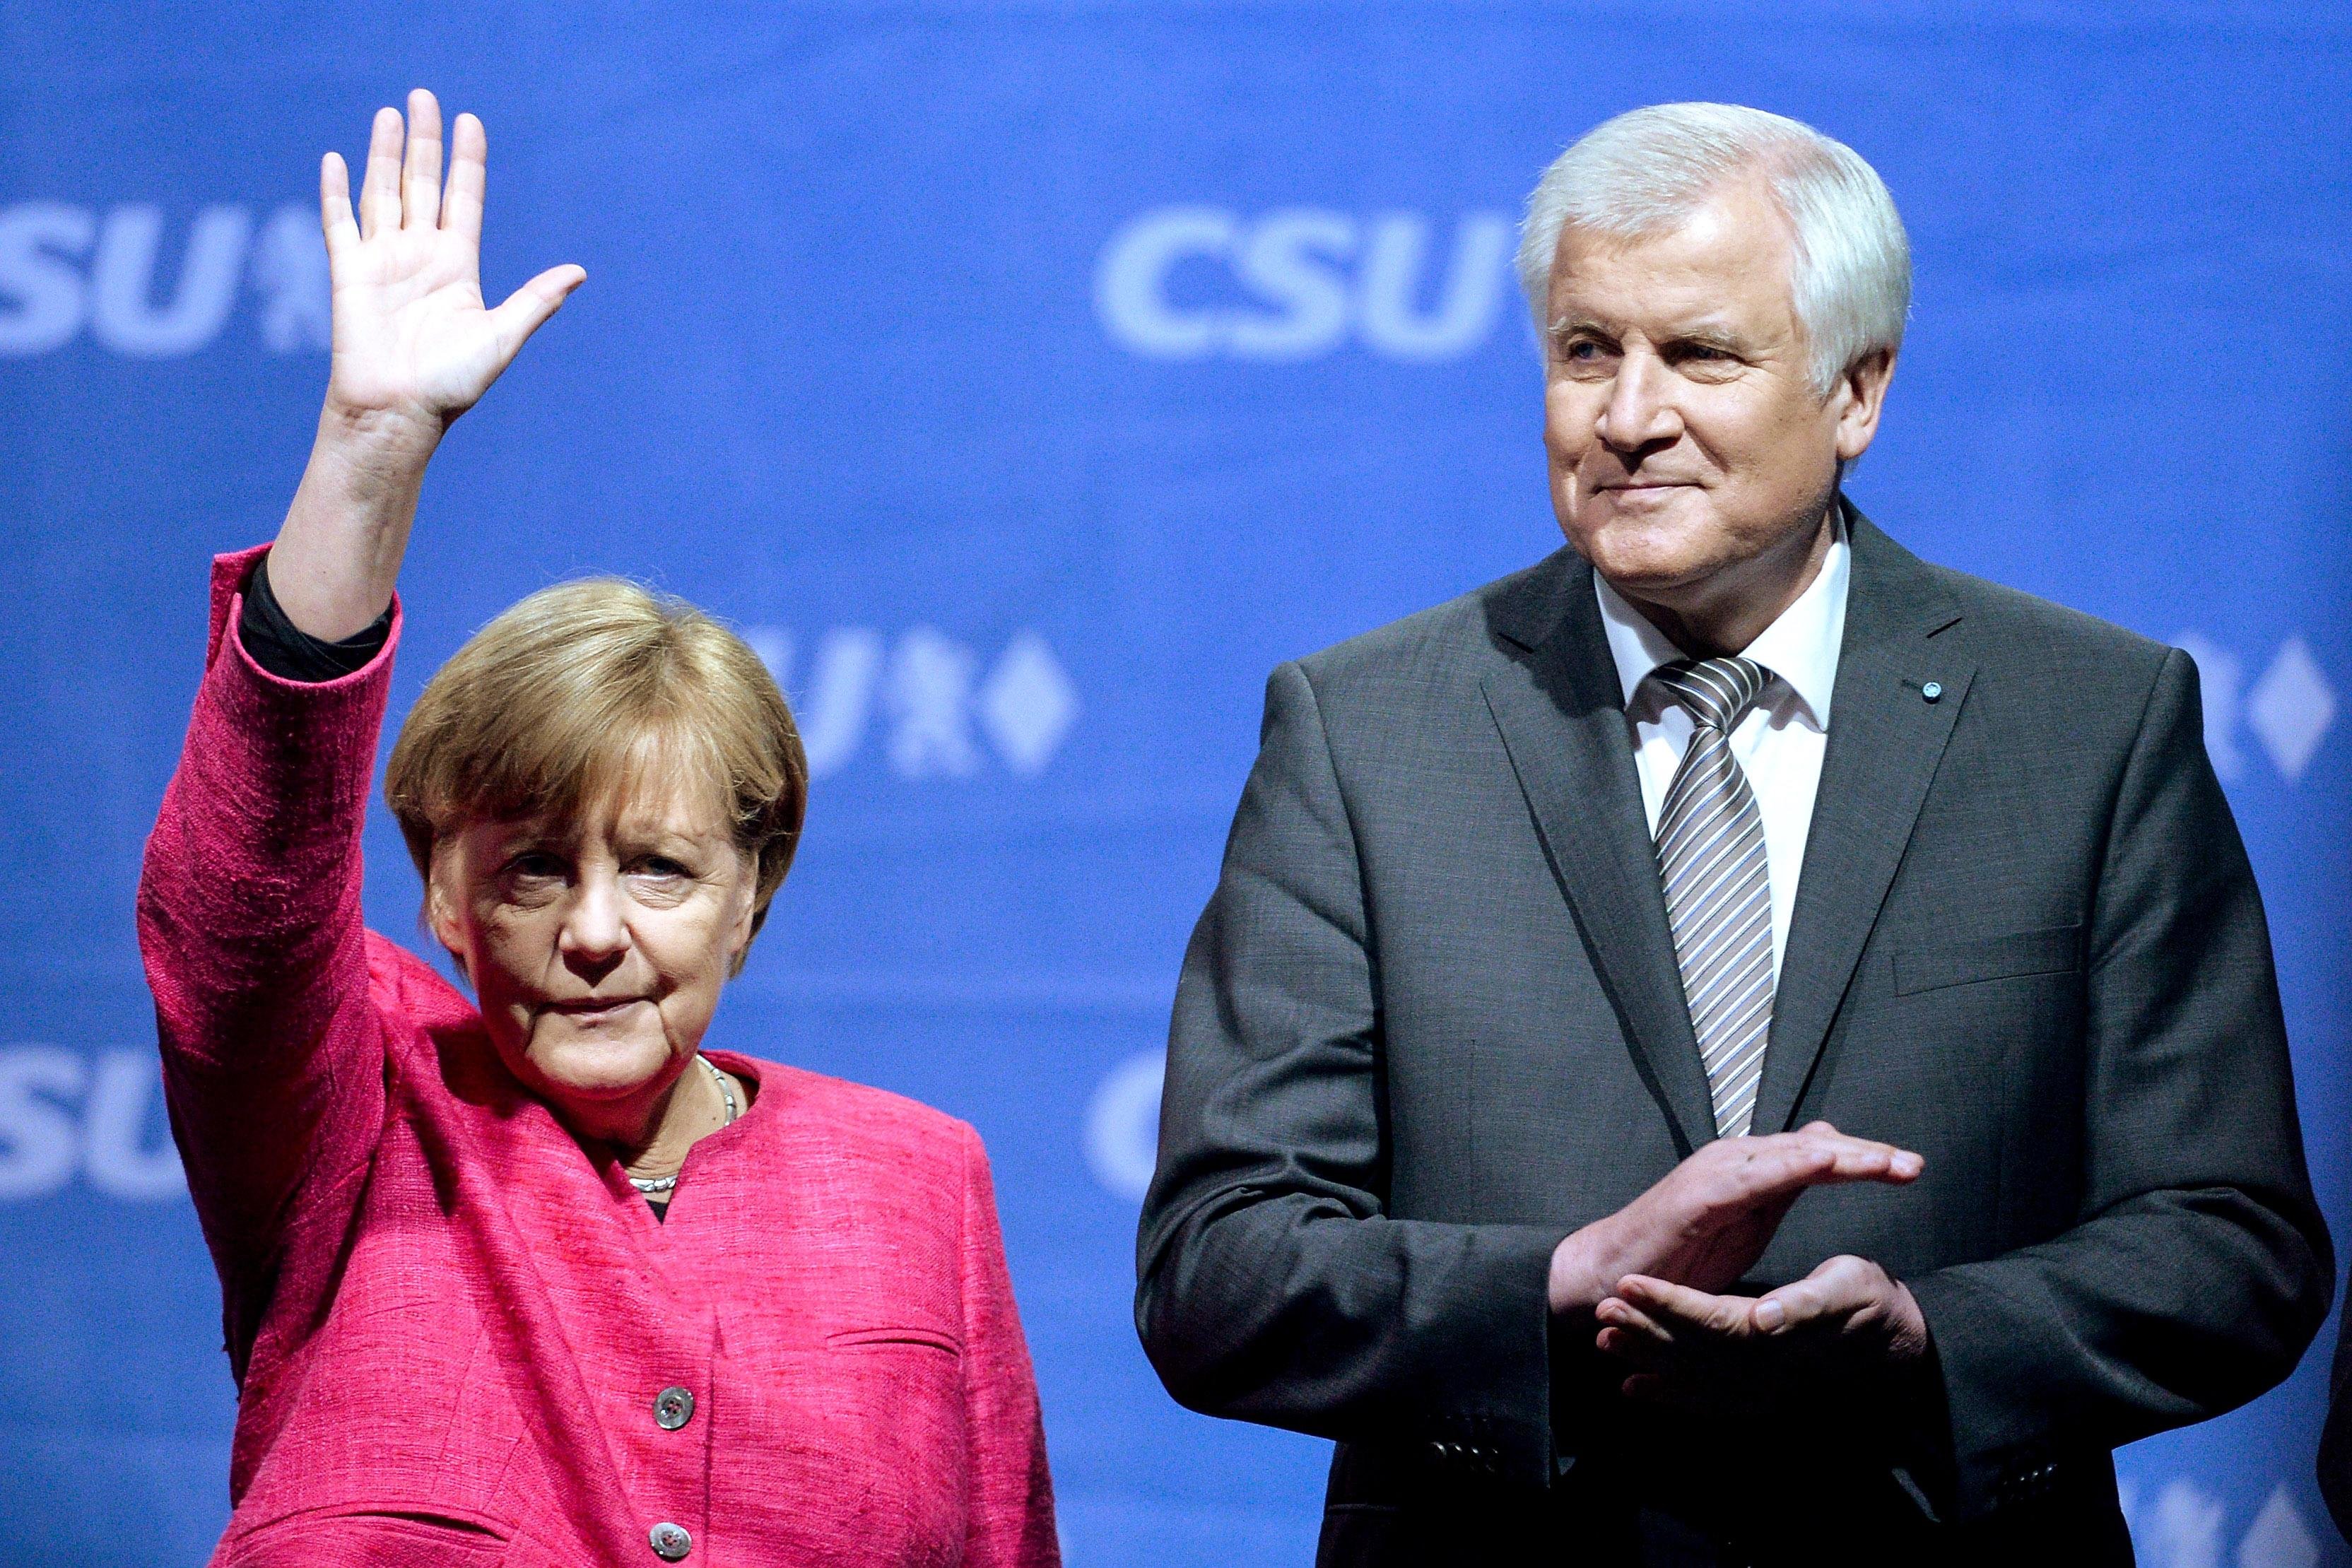 Angela Merkel's Future in Doubt as German Interior Minister Offers to Resign Over Migrant Policy